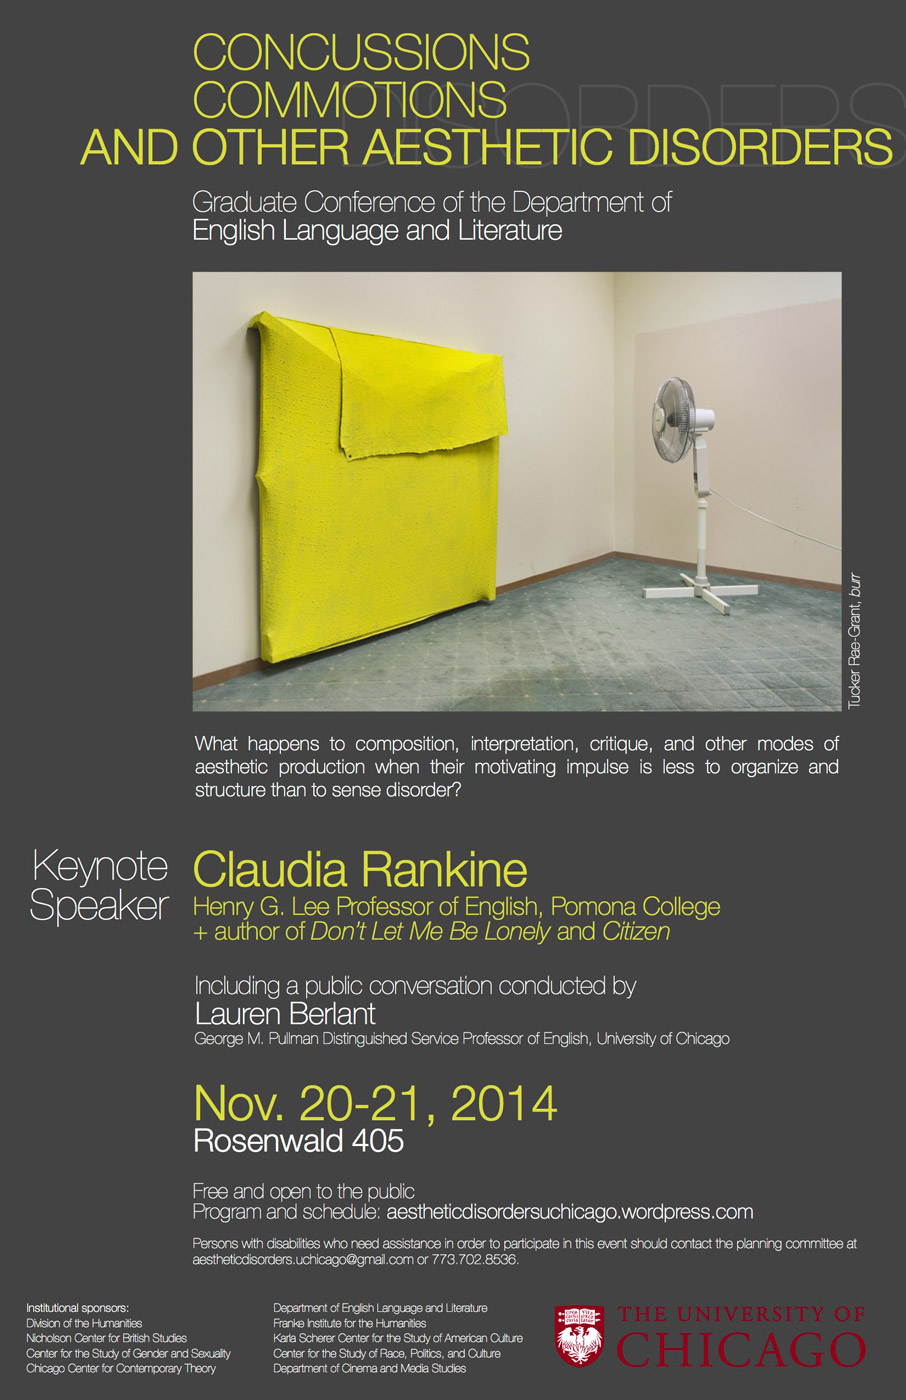 event poster for Claudia Rankine: concussions, commotions, and other aesthetic disorders